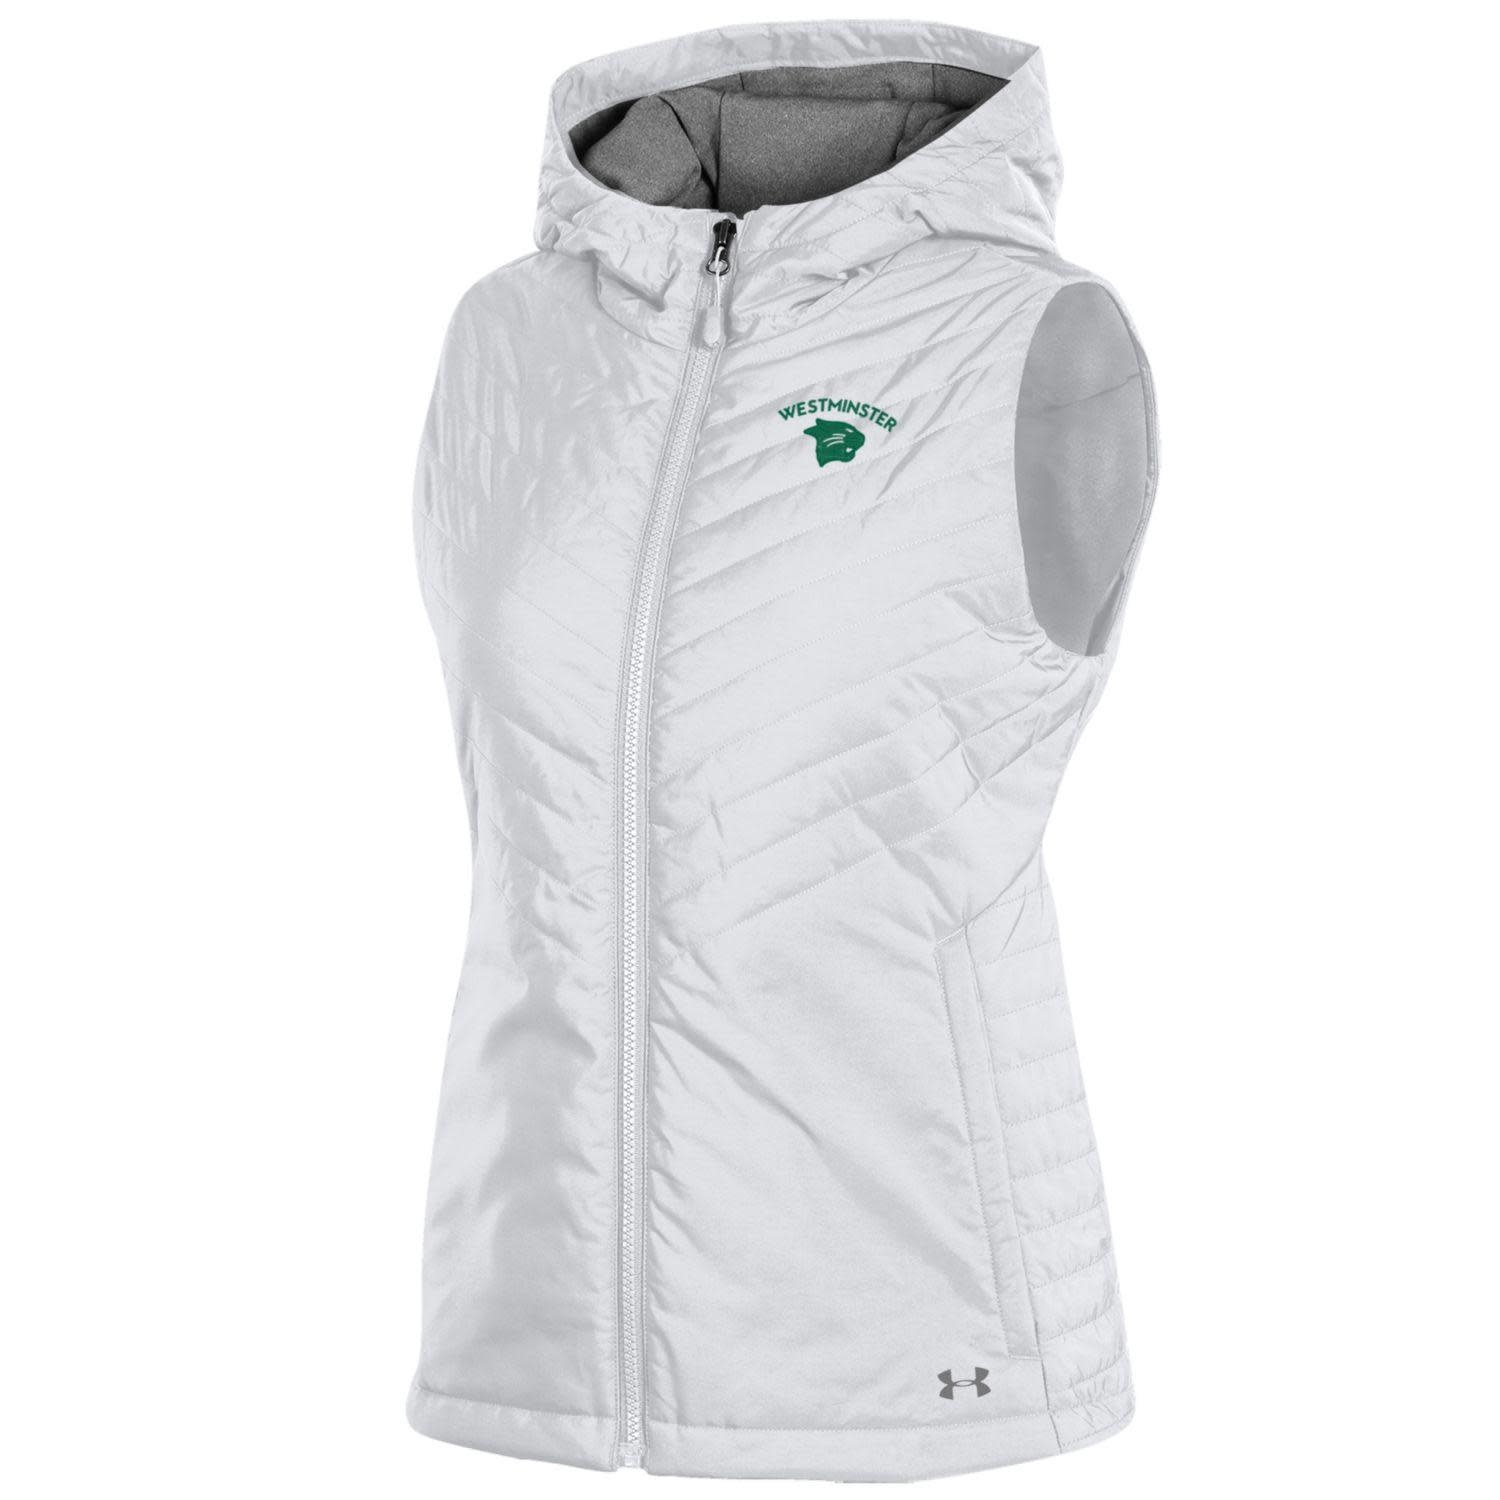 Under Armour Lightweight Puffer Hooded Vest